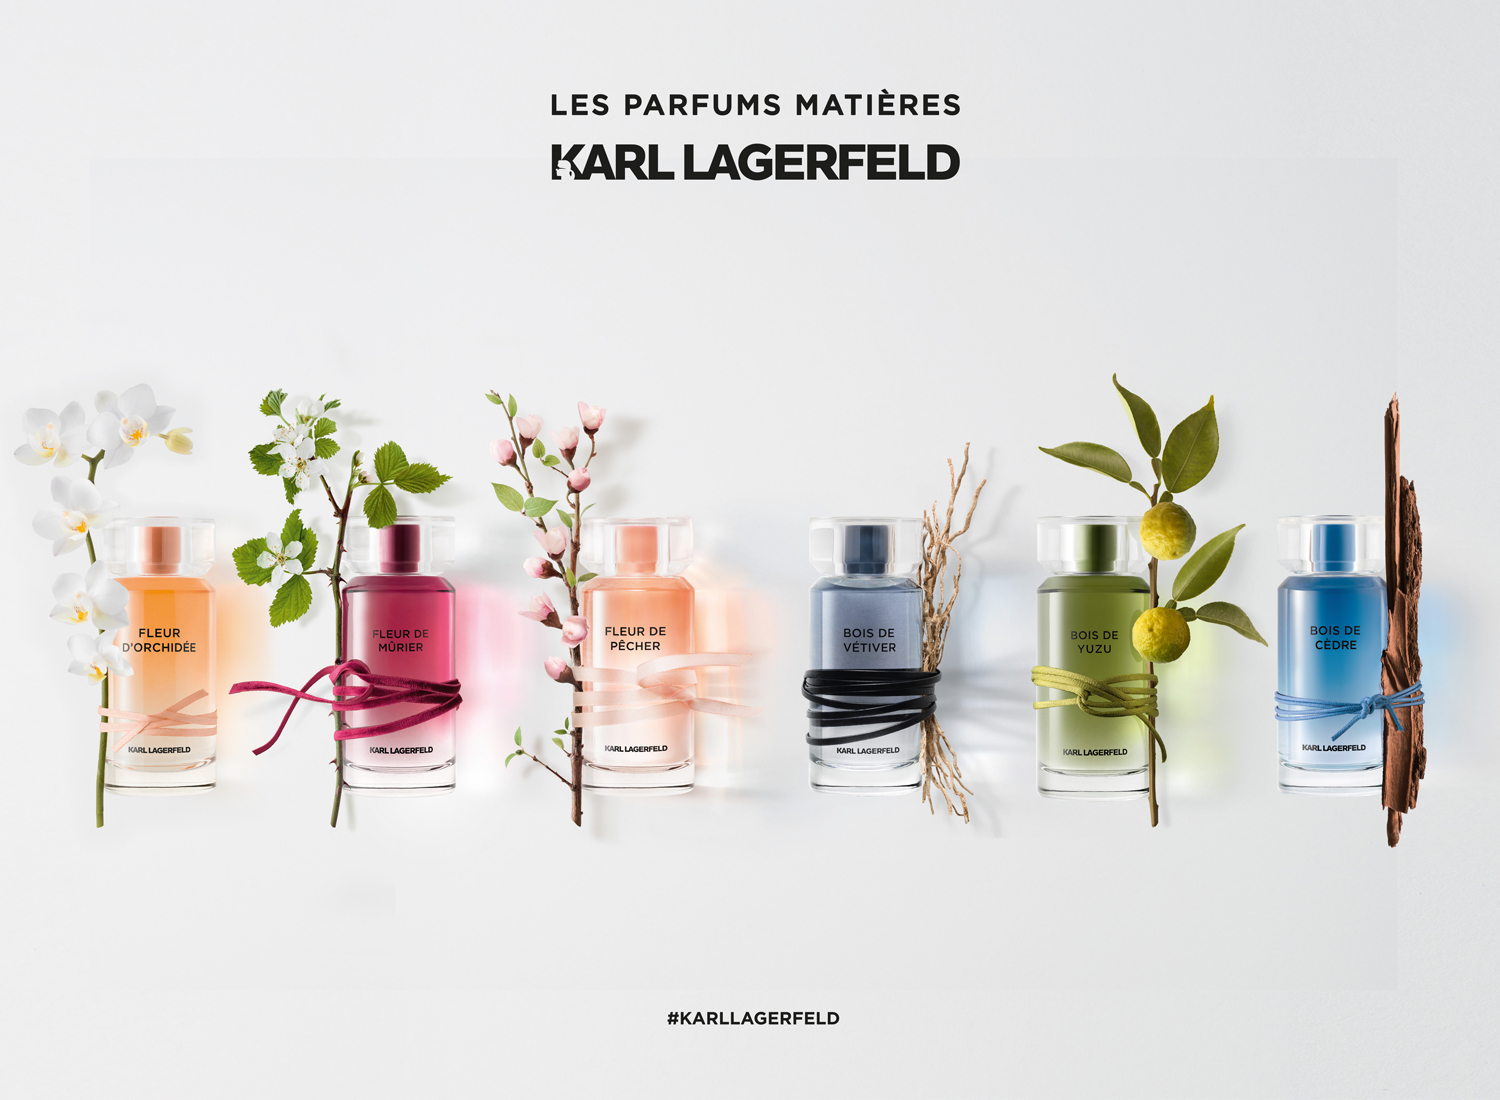 Karl Lagerfeld Les Parfums Matieres